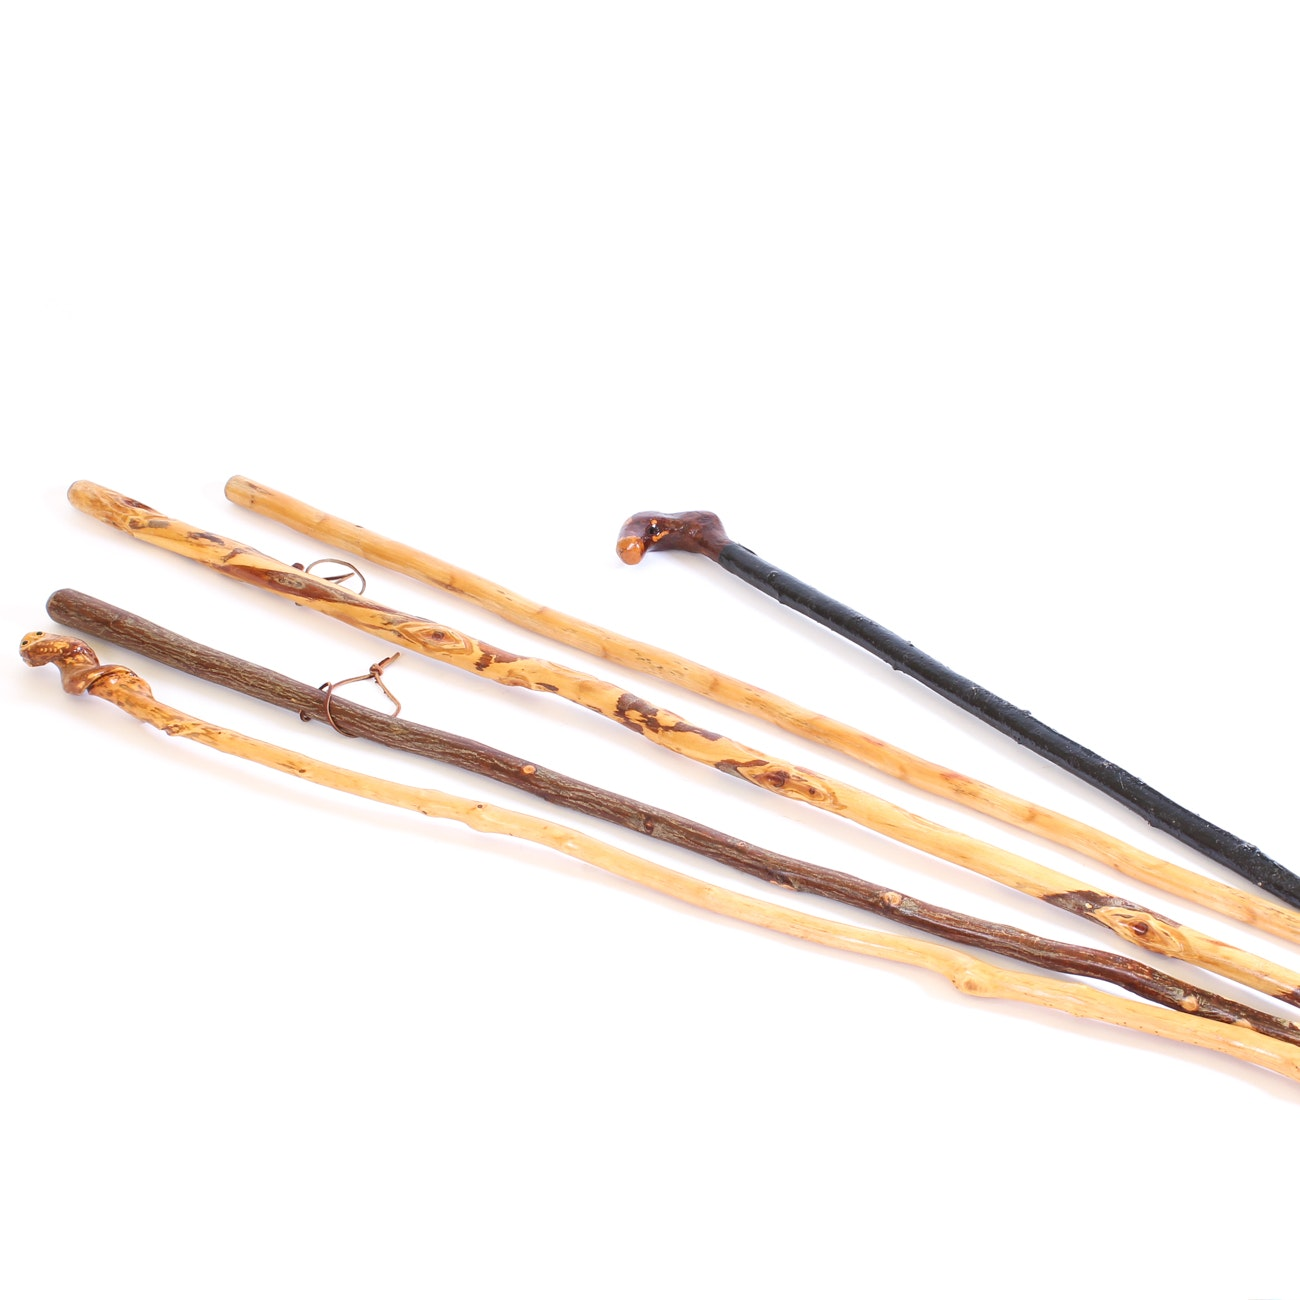 Assorted Walking Sticks with Cane